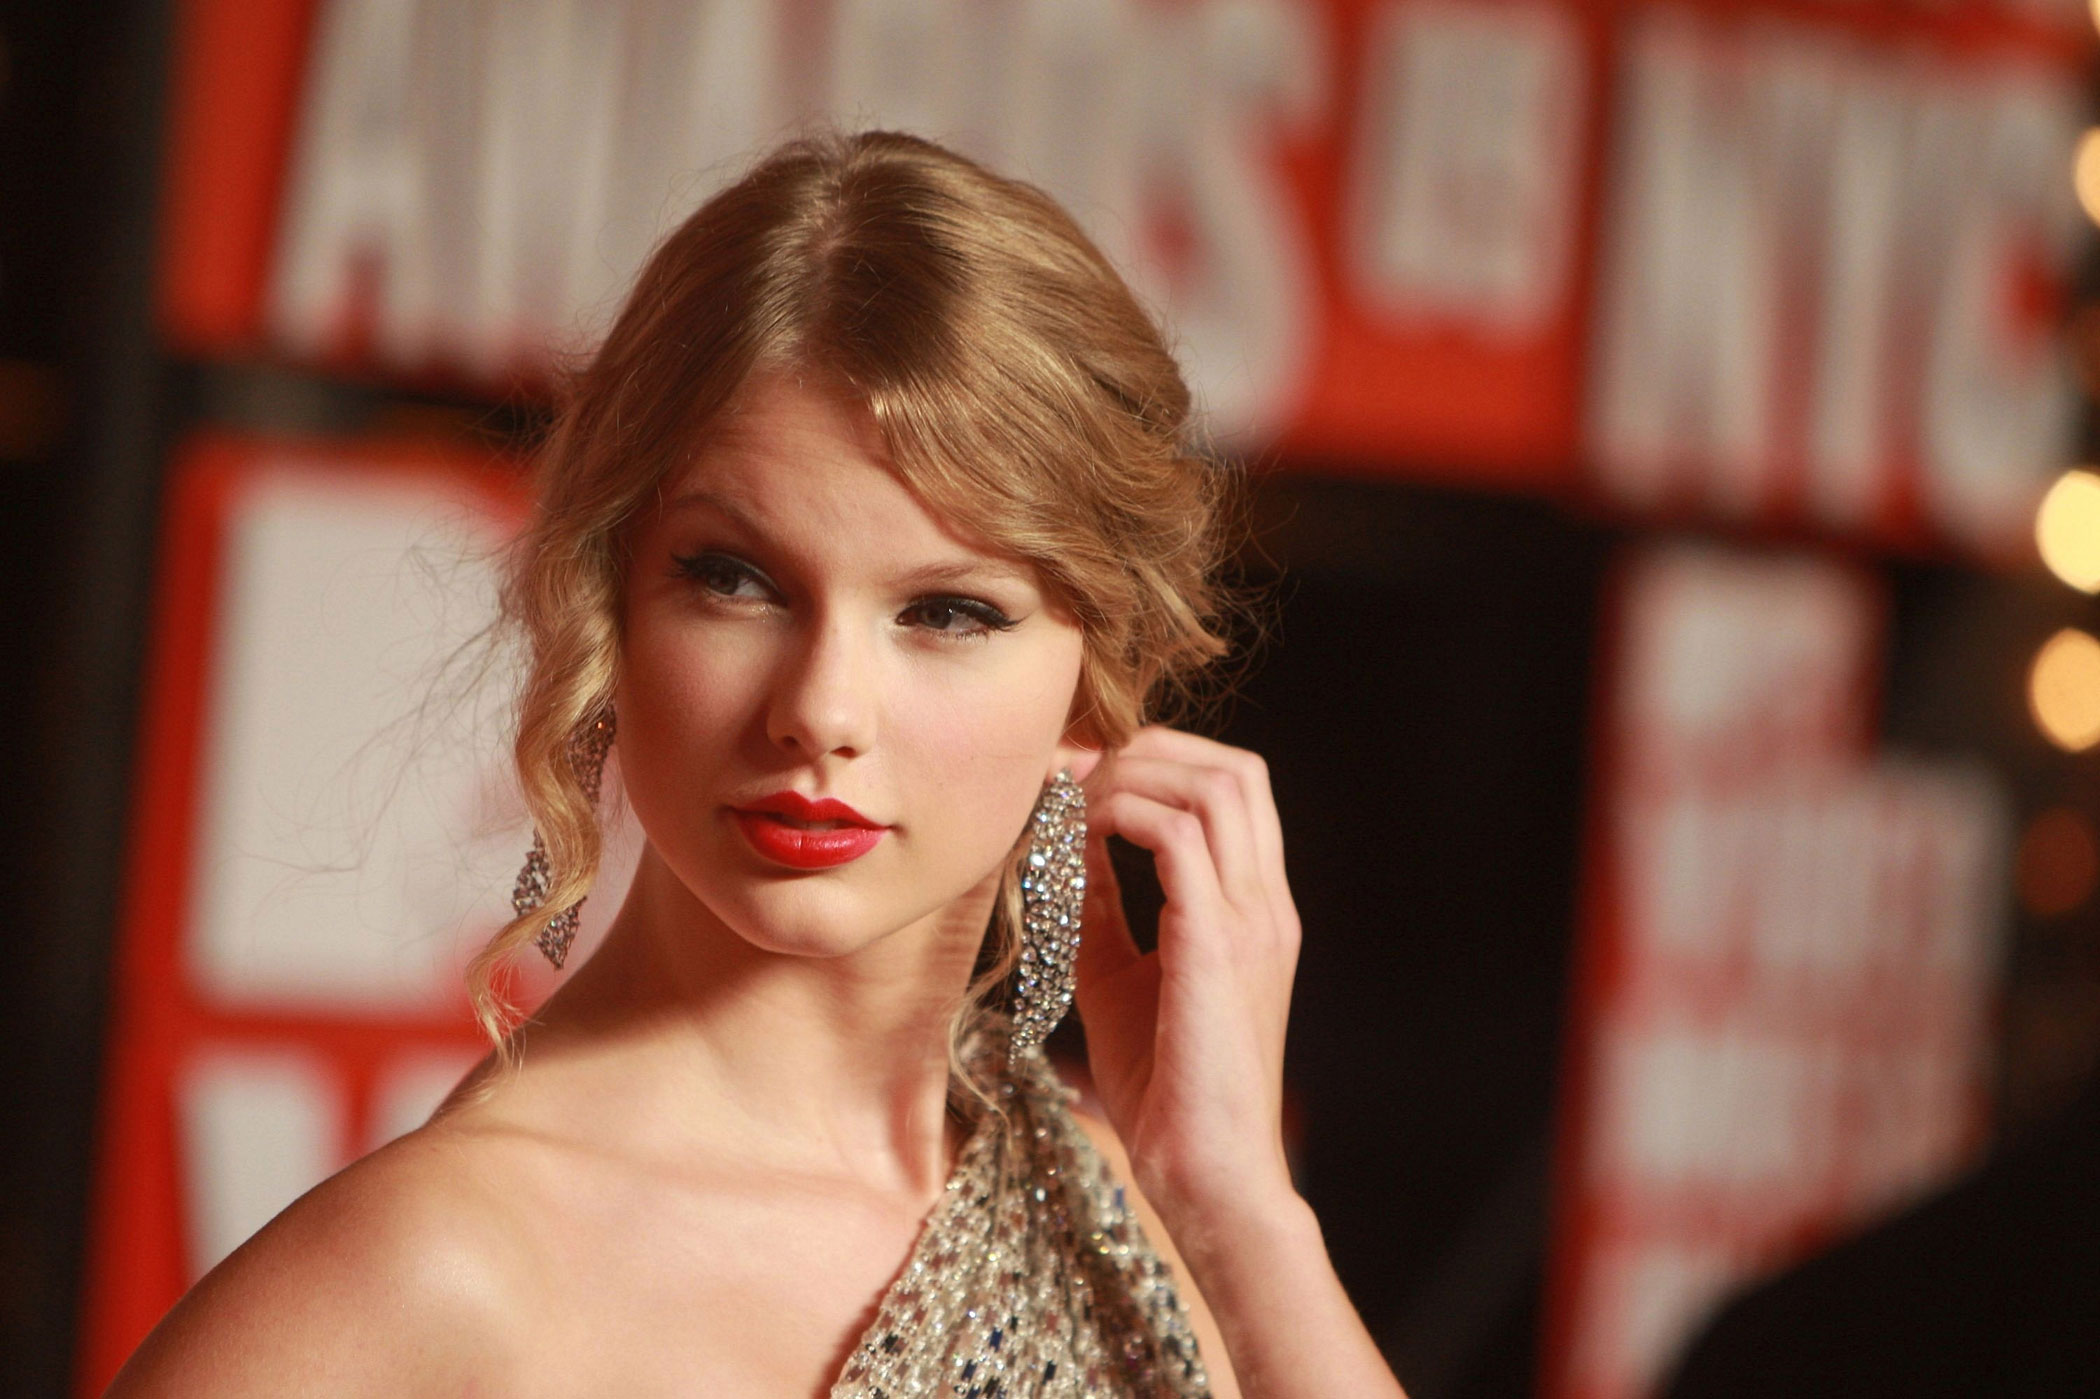 Taylor Swift arrives to the 2009 MTV Video Music Awards at Radio City Music Hall in New York City.